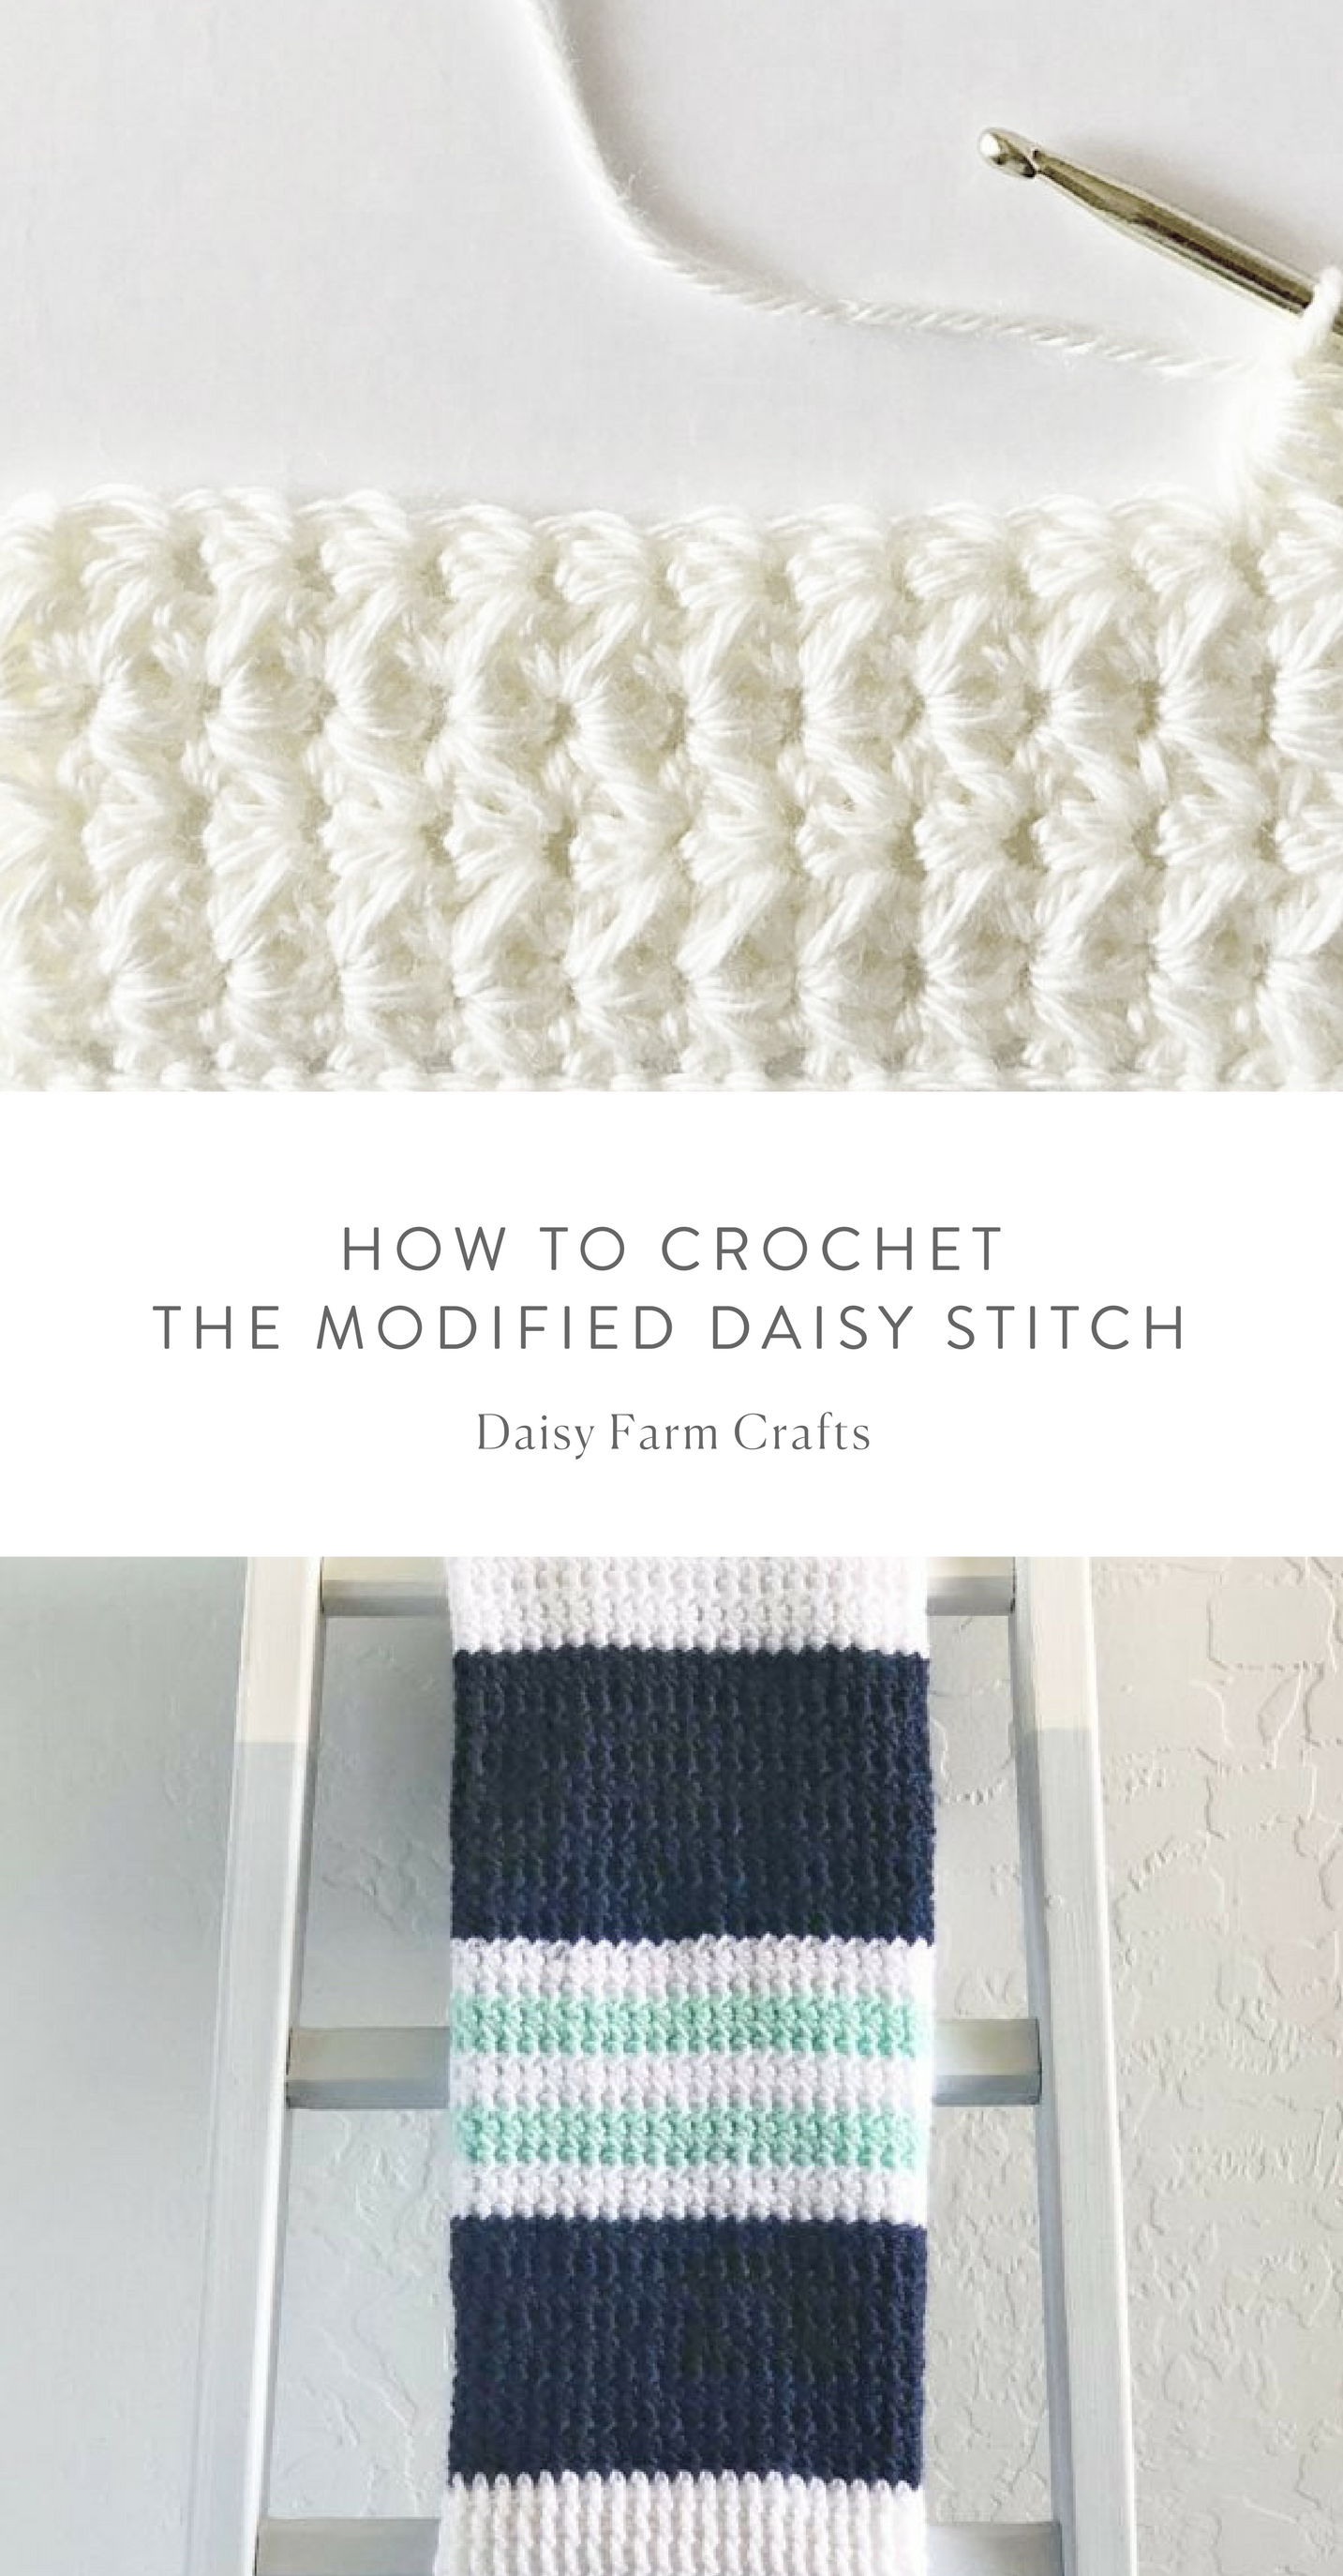 How to Crochet the Modified Daisy Stitch | Crochet | Pinterest ...